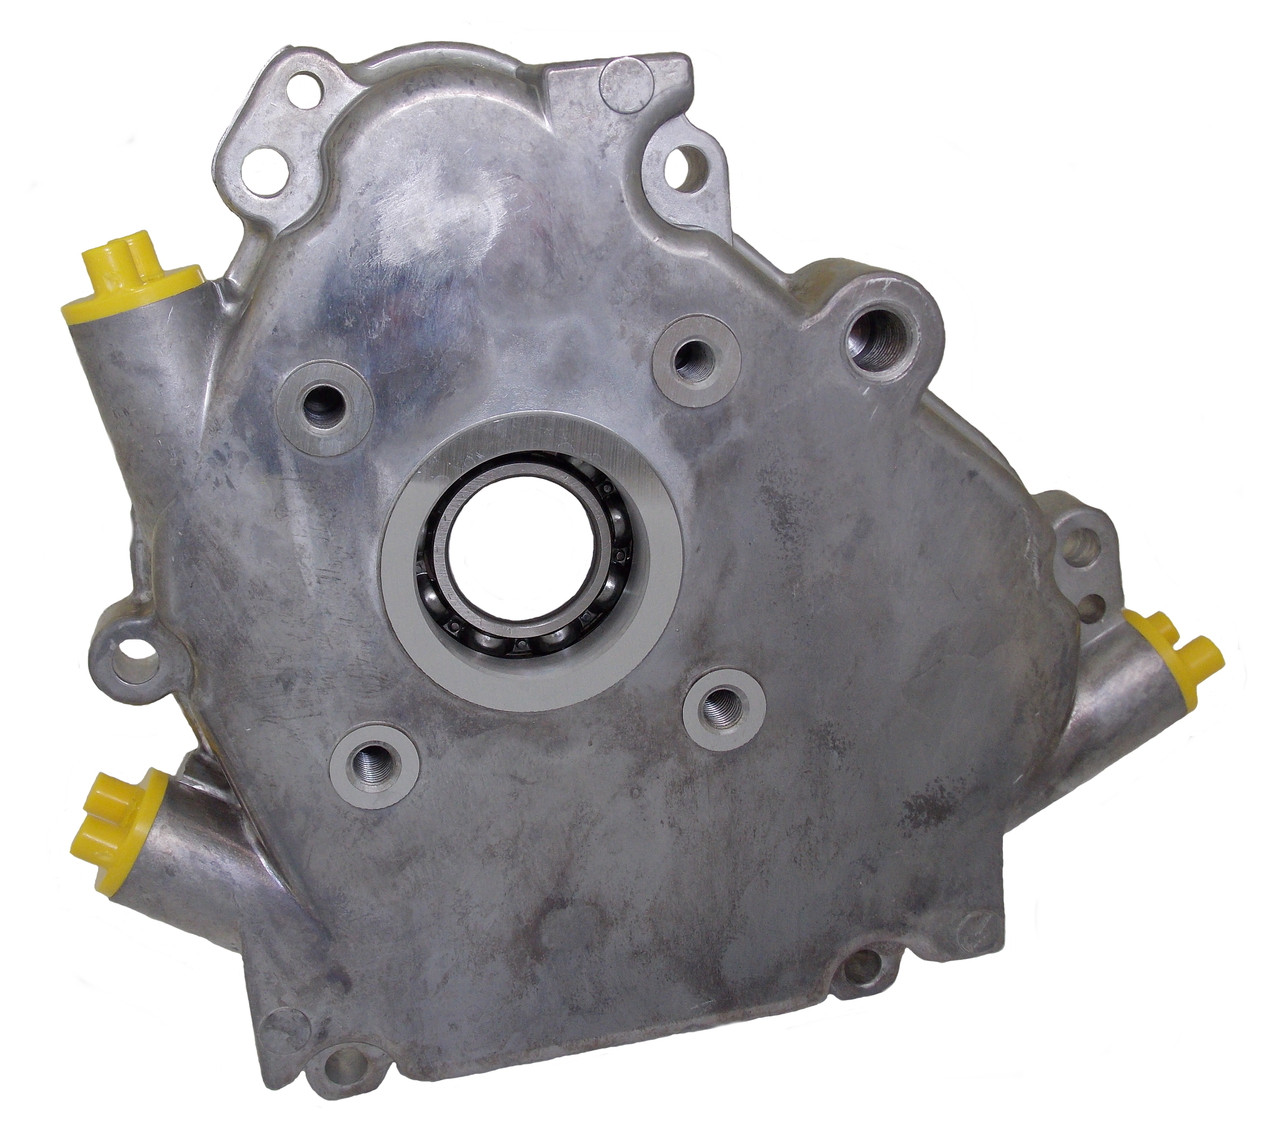 555706 Animal Crankcase Cover